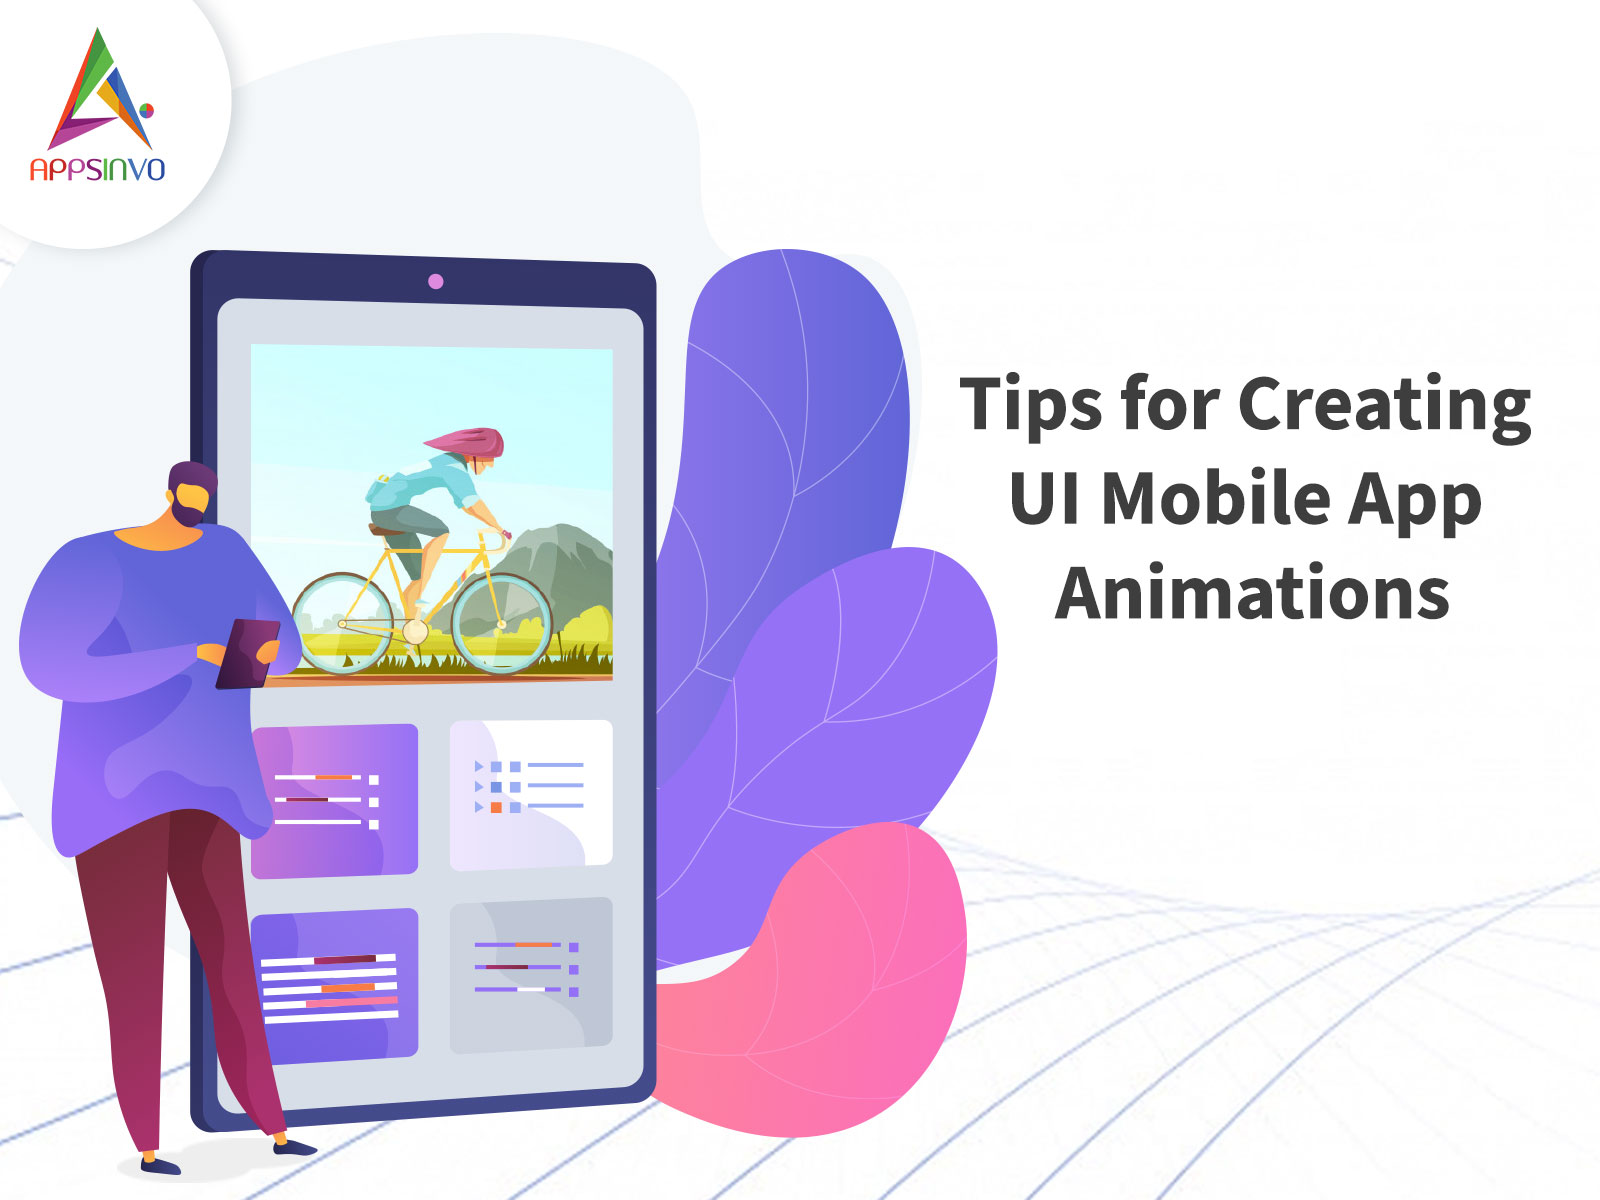 Appsinvo: Tips for Creating UI Mobile App Animations